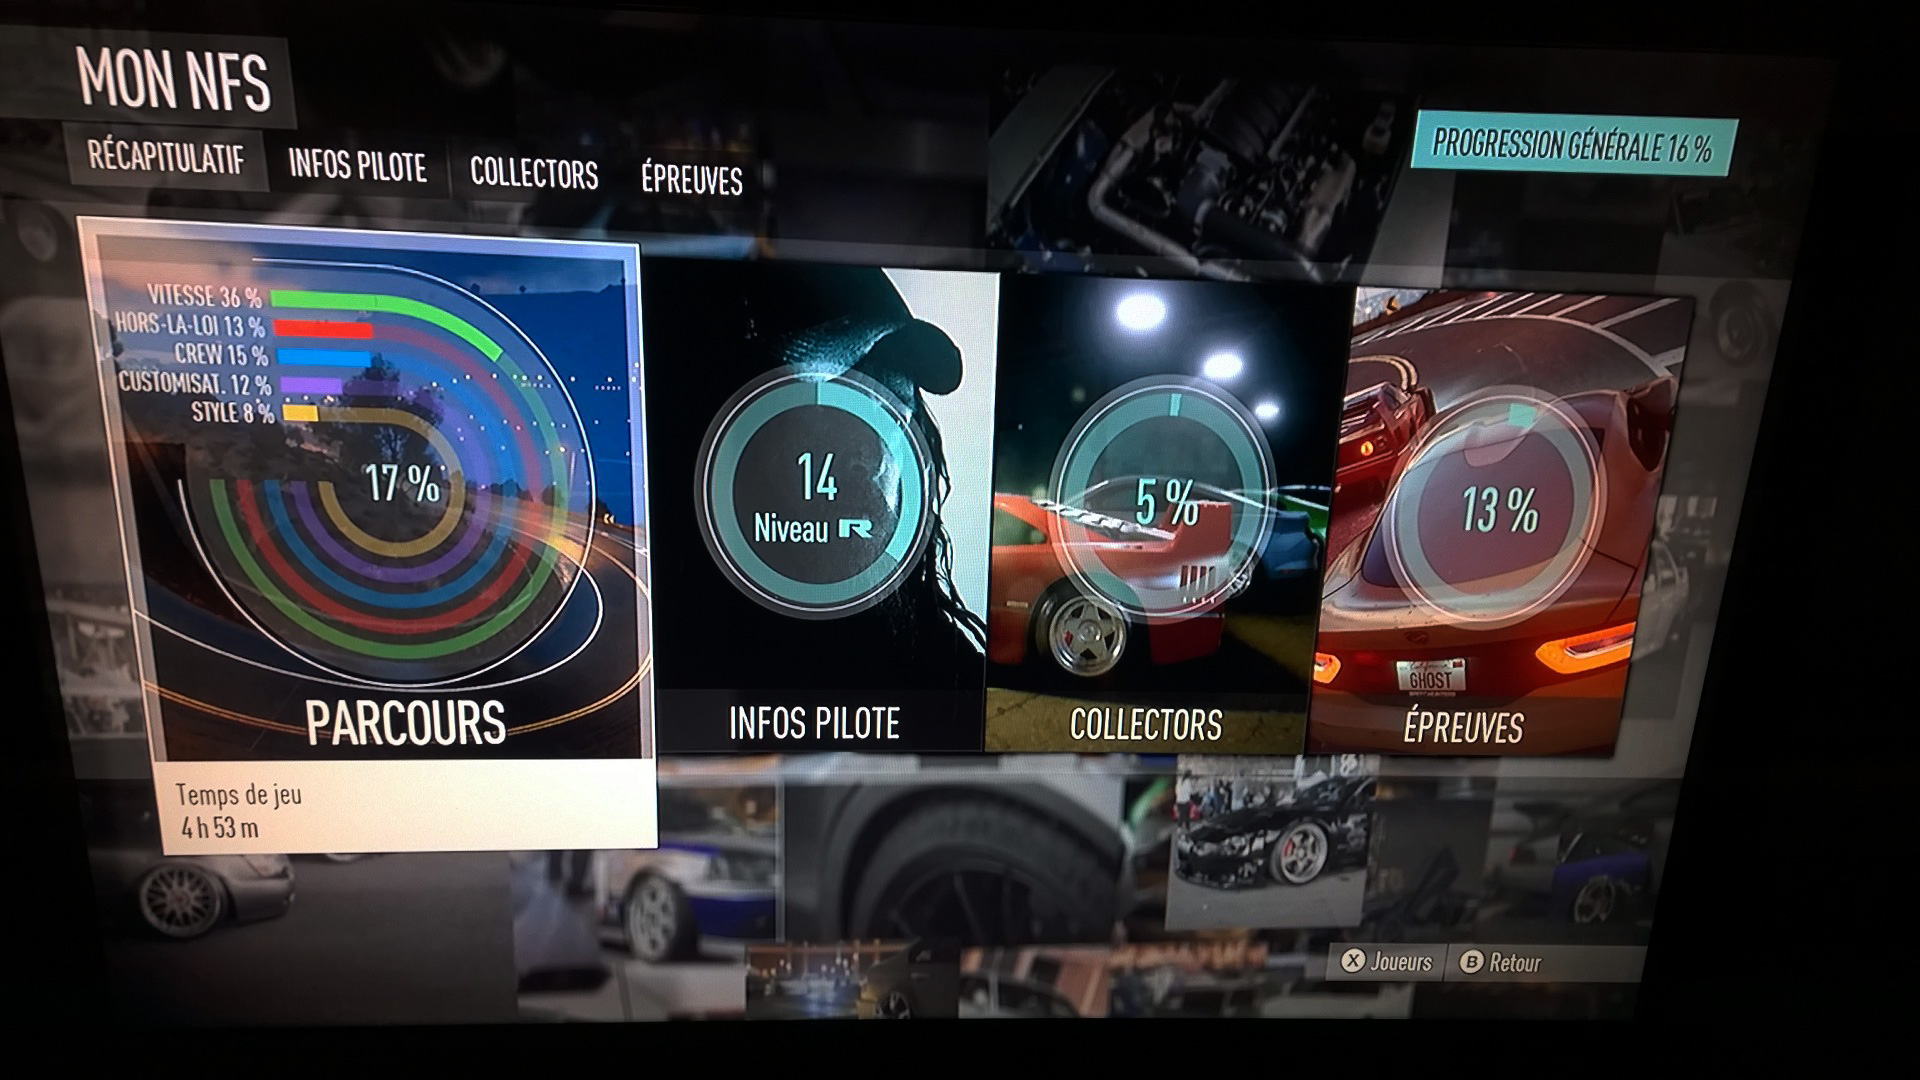 Need for Speed - screen photo - 2015 - ma progression : 16%, 5h de jeu, dont 2h à regarder les éléments custom, moteur et un temps à passer à peindre.